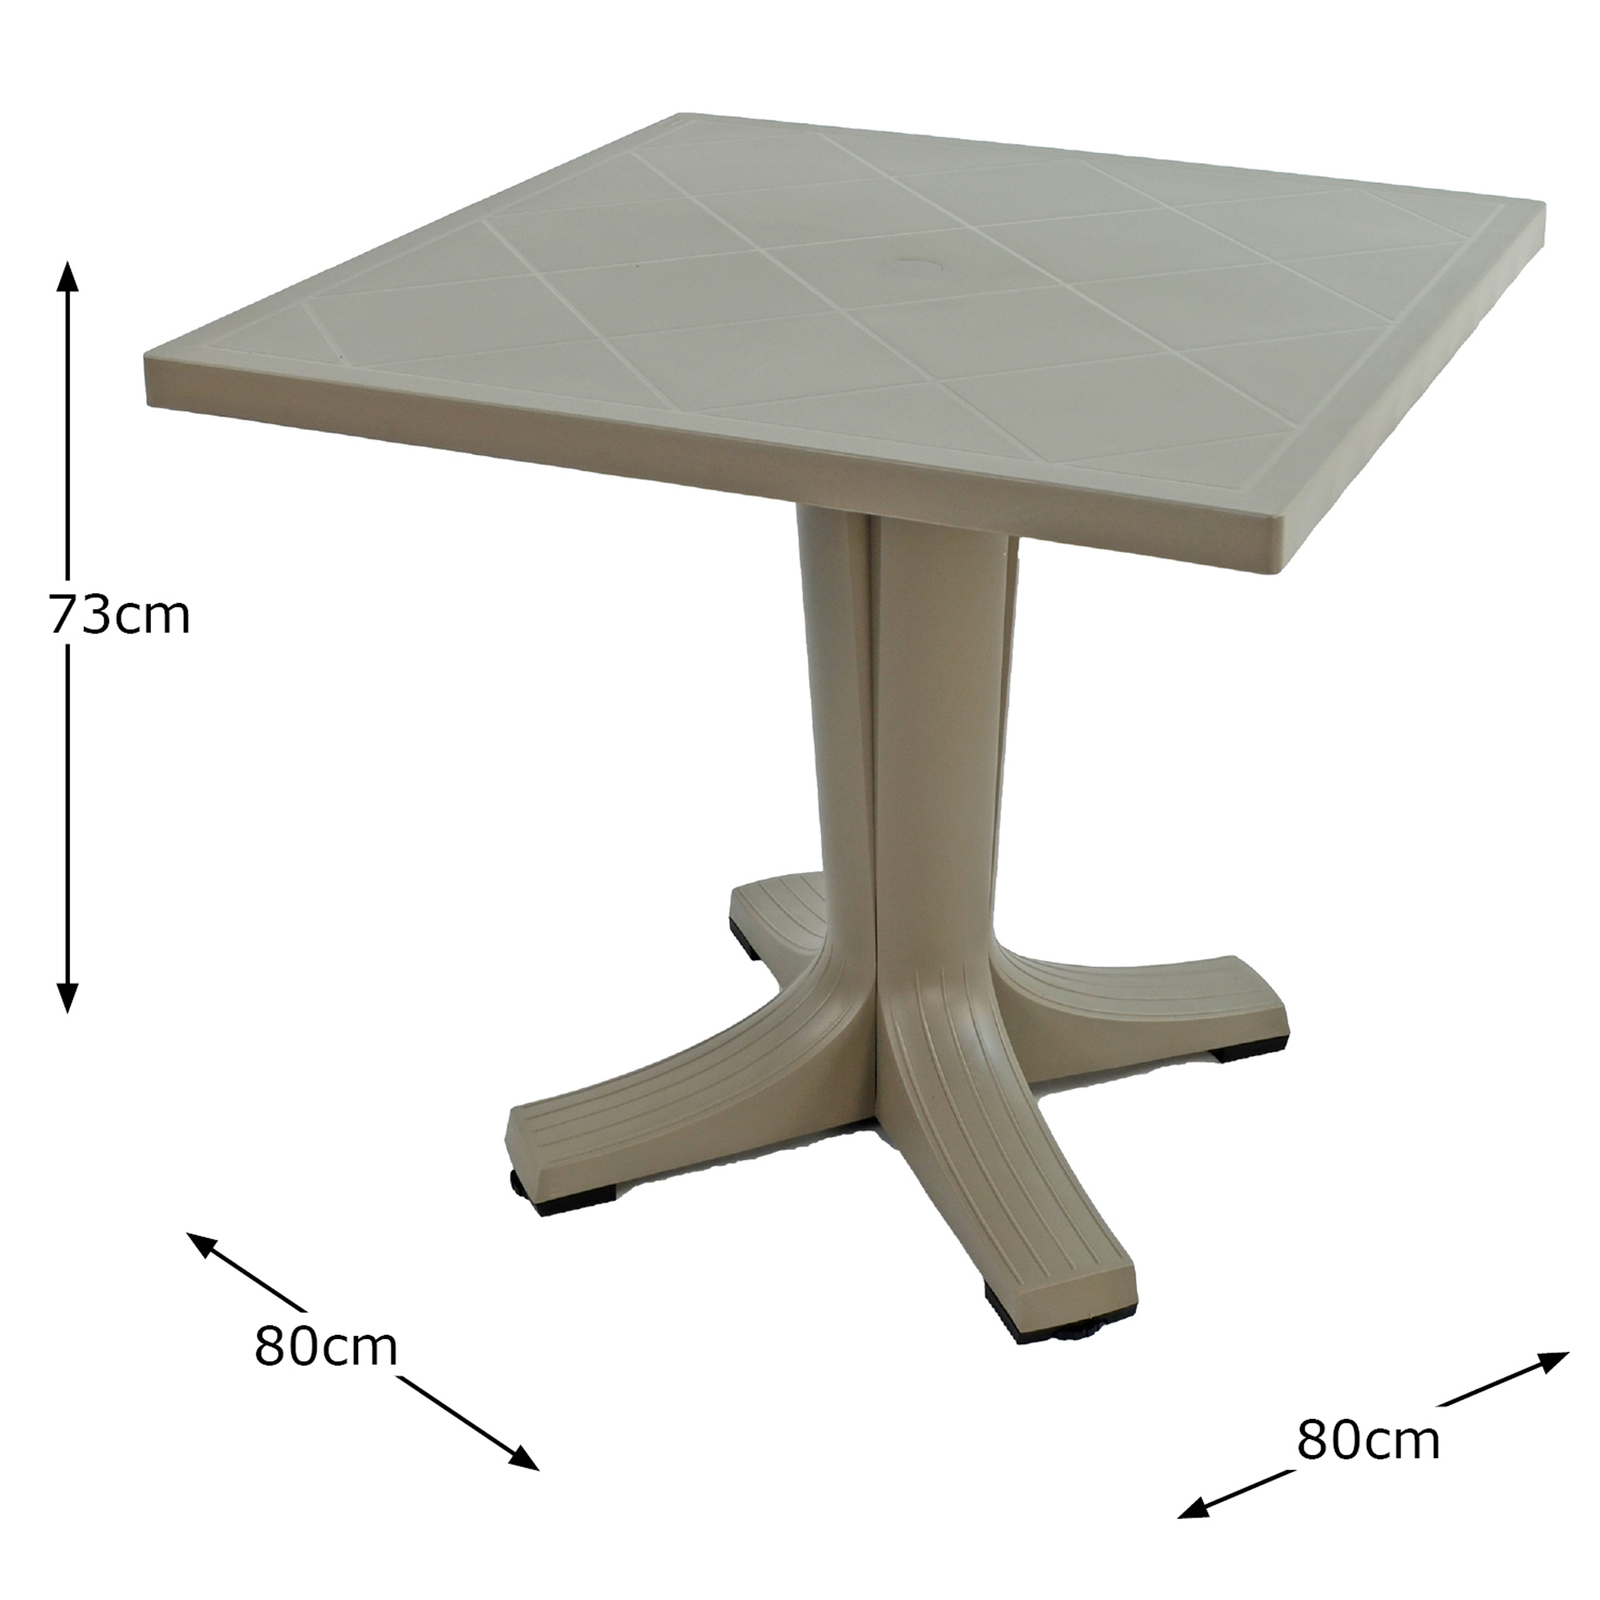 Nardi Giove 80cm Square Table Turtle Dove